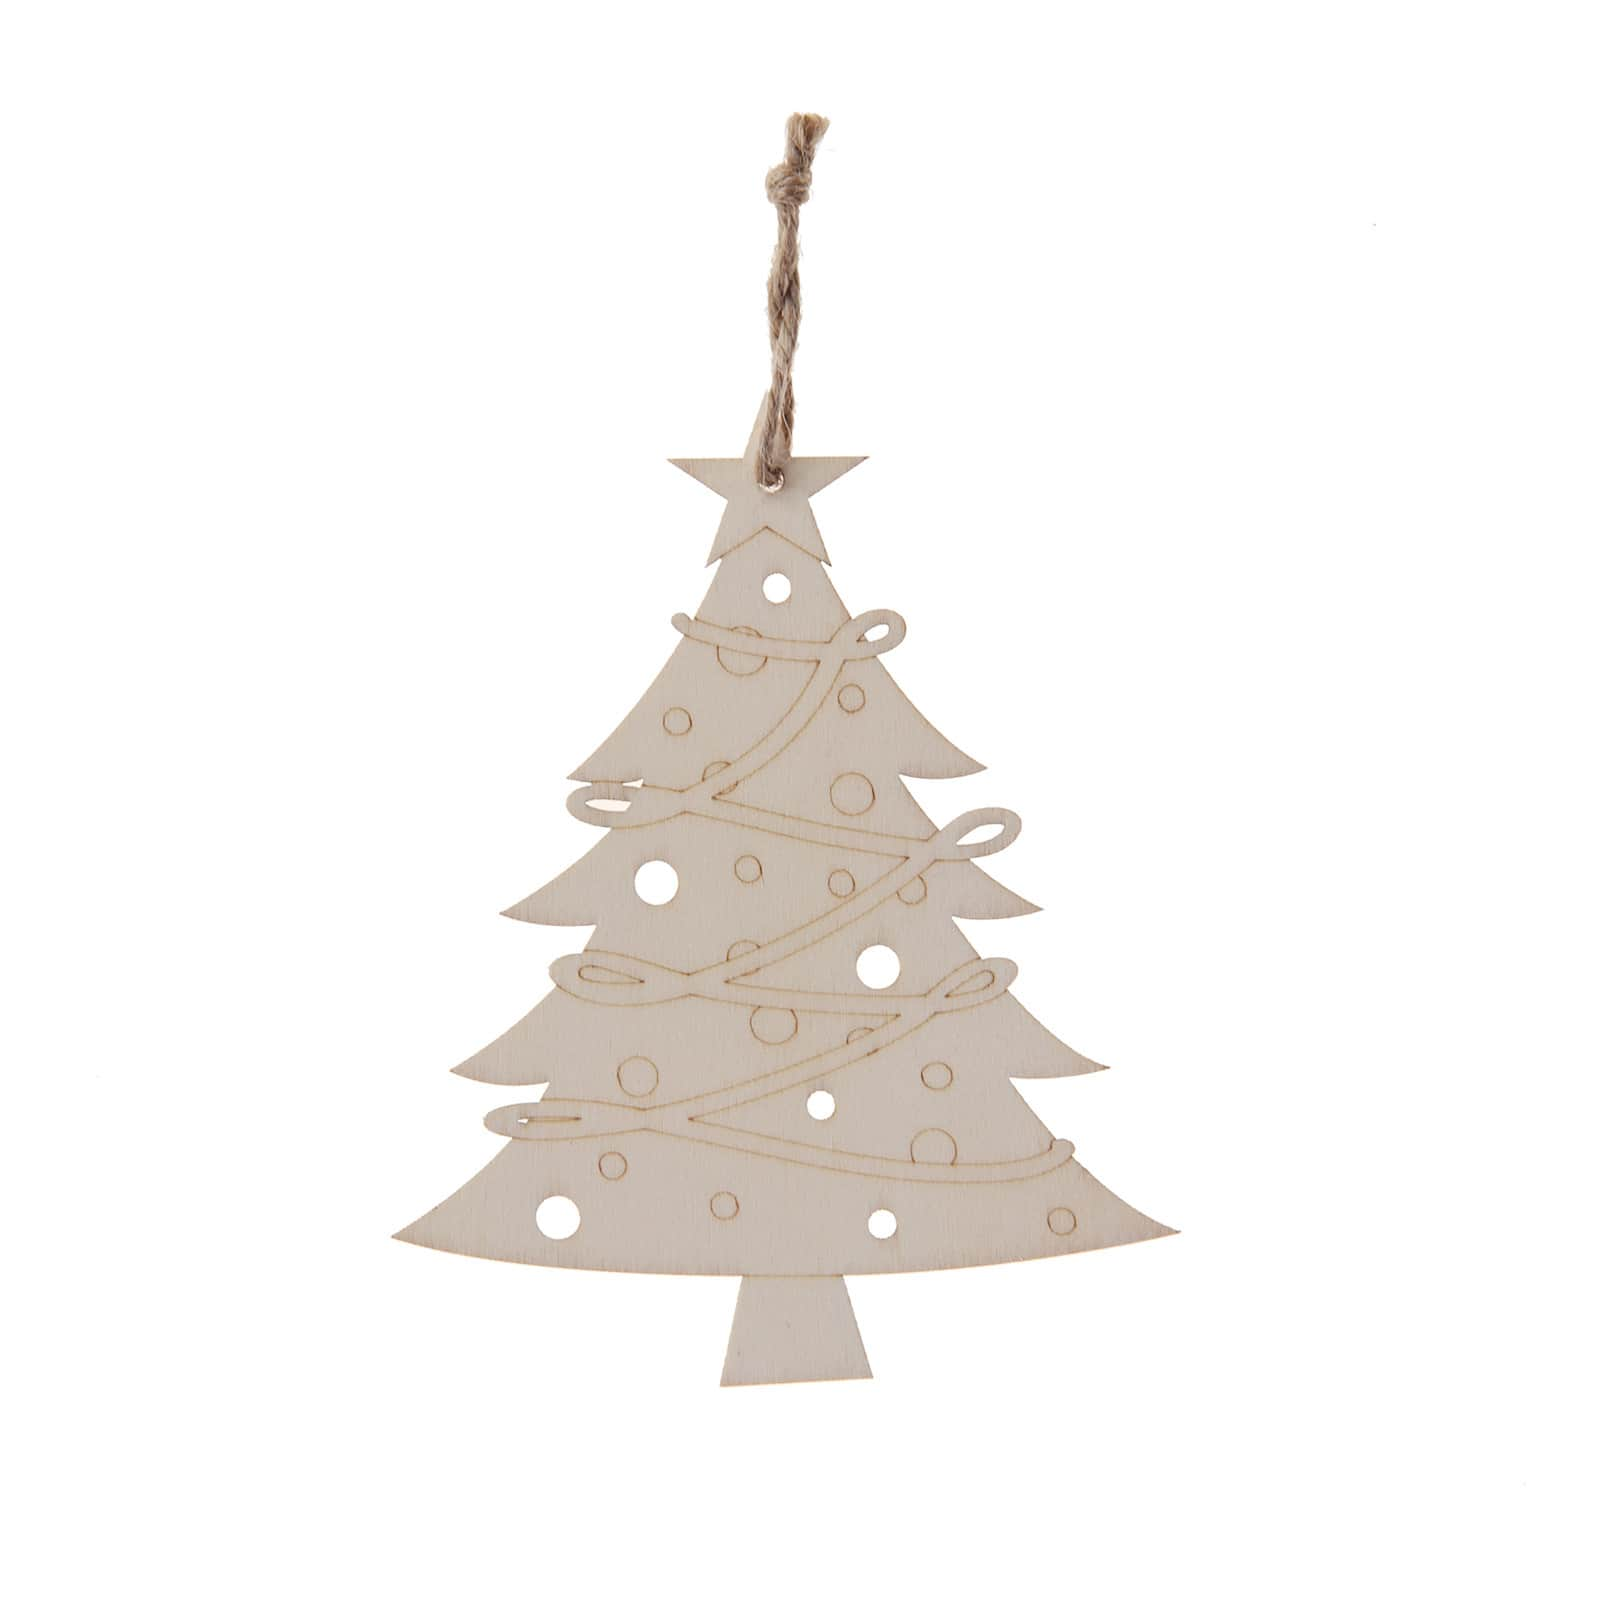 5 5 Wooden Laser Cut Christmas Tree Ornament By Artminds Michaels